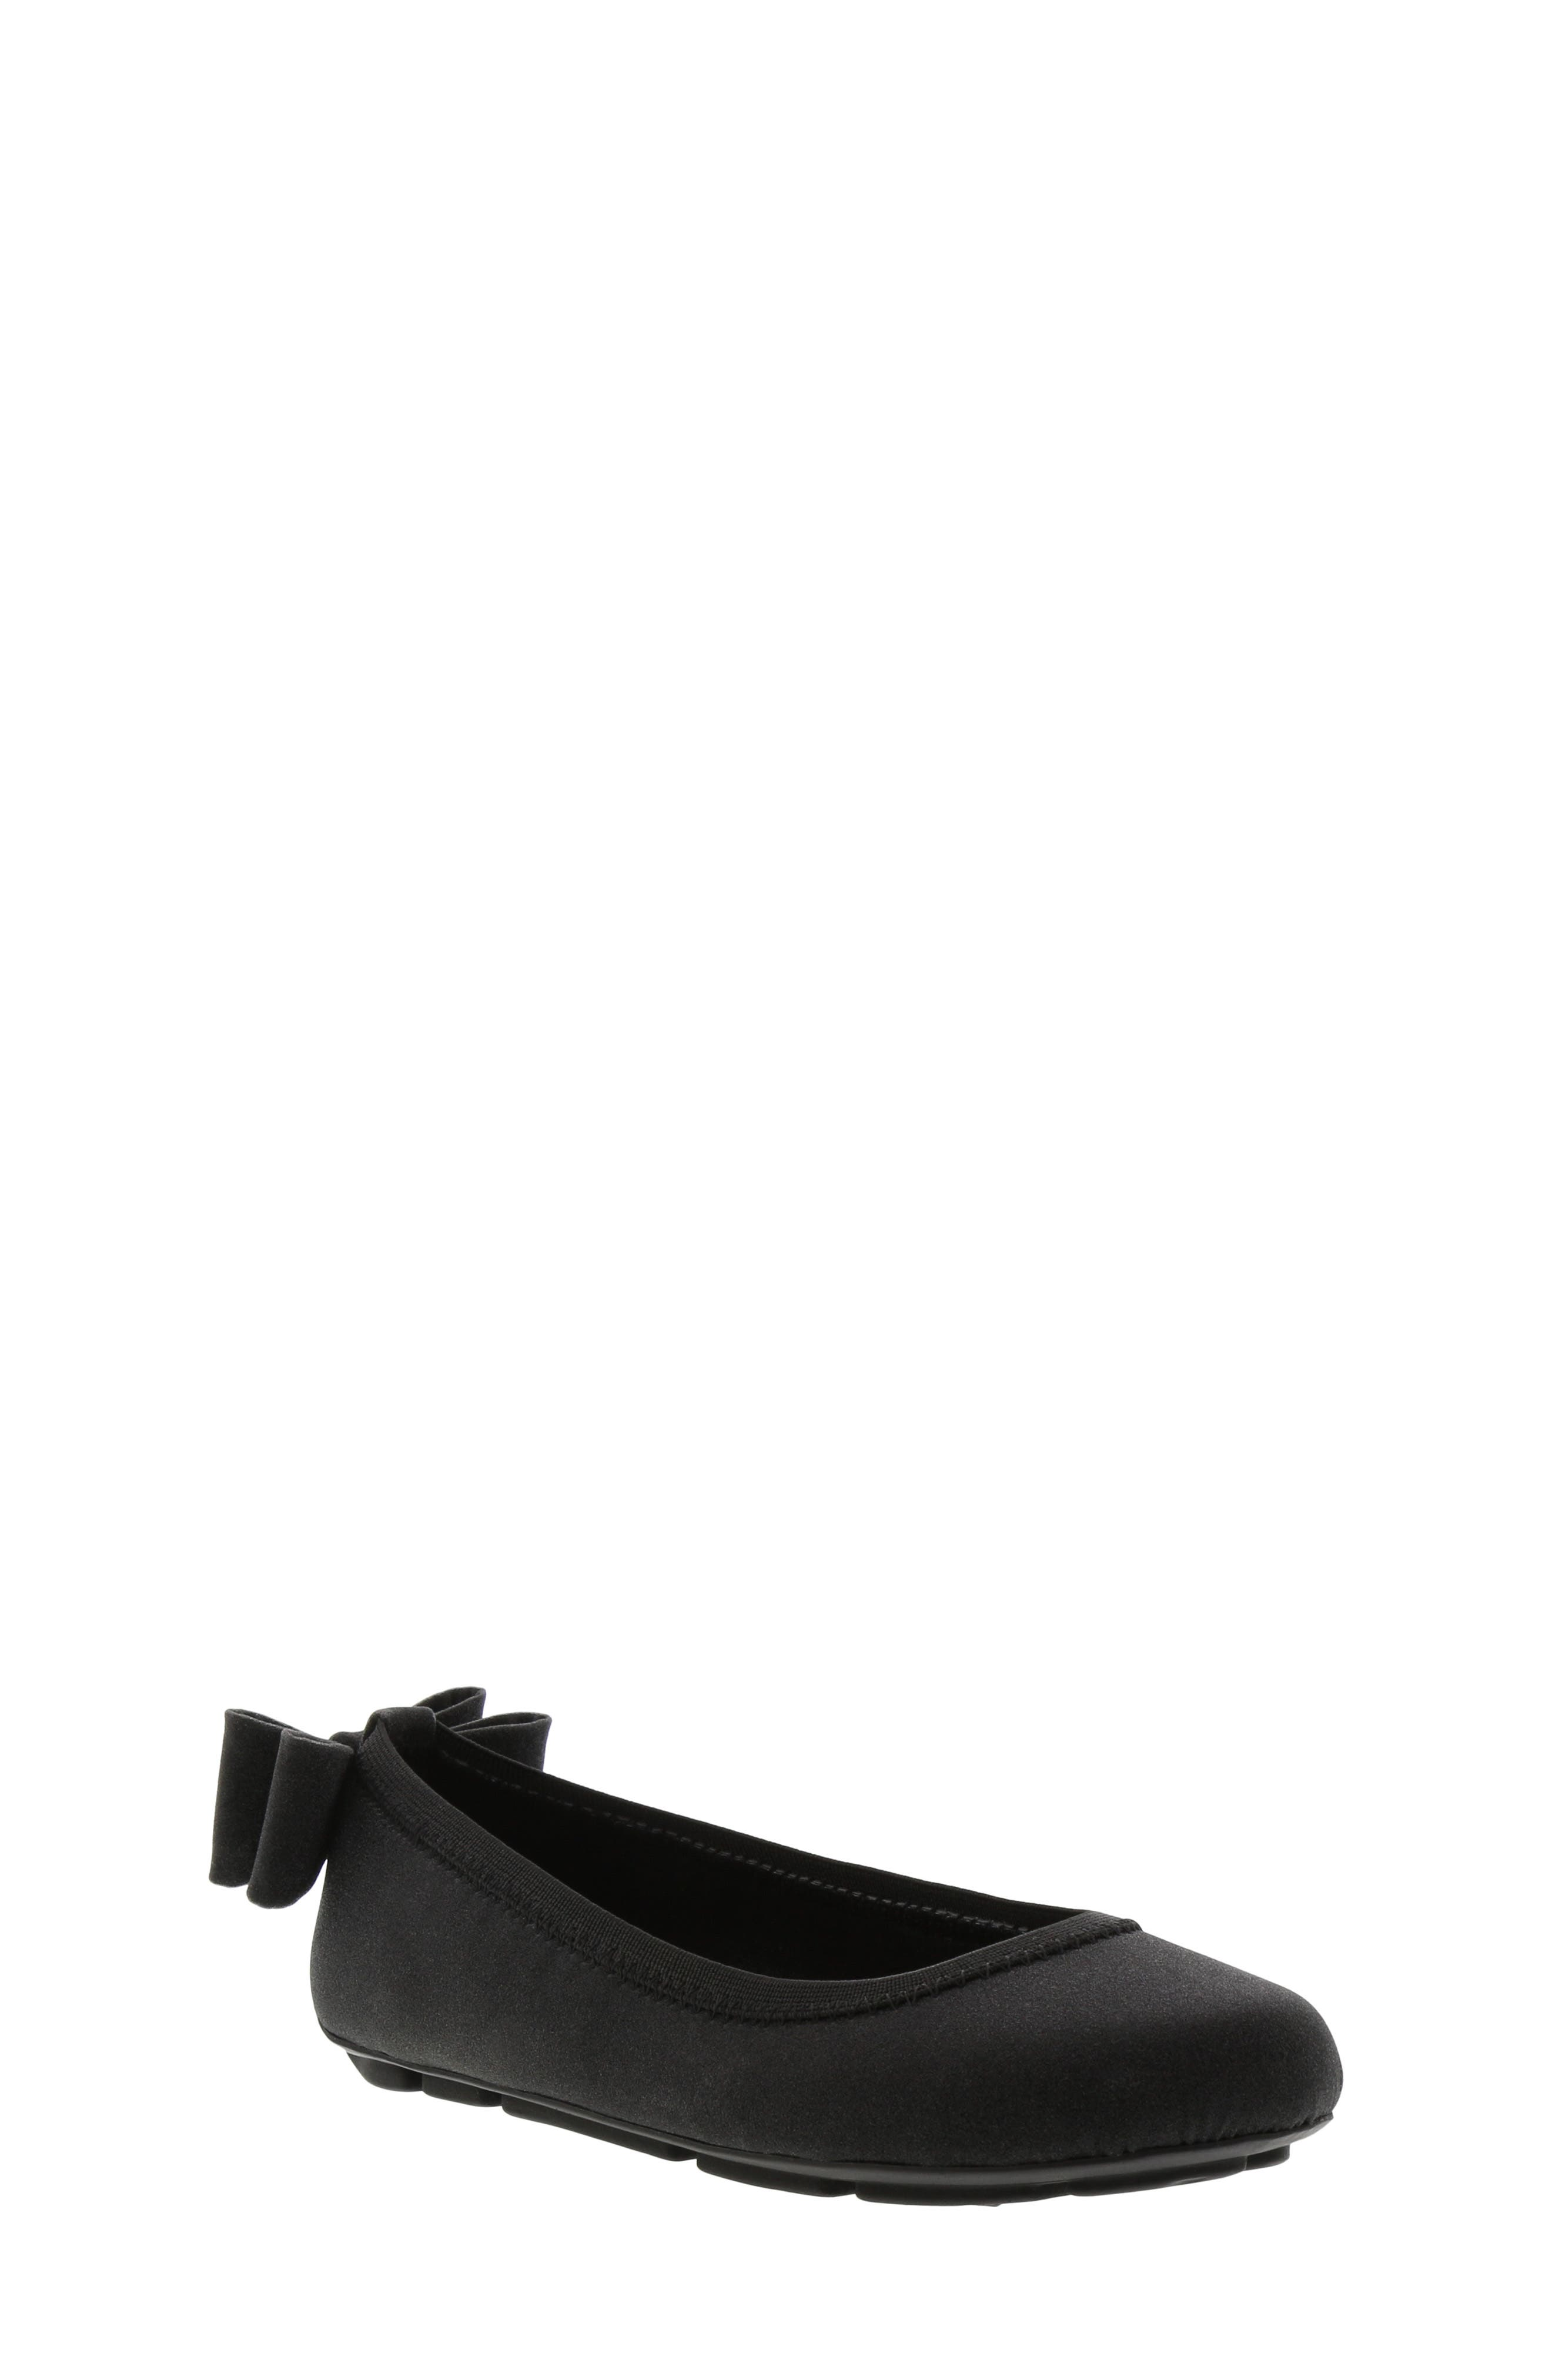 MICHAEL MICHAEL KORS,                             Rover Ellie Flat,                             Main thumbnail 1, color,                             BLACK